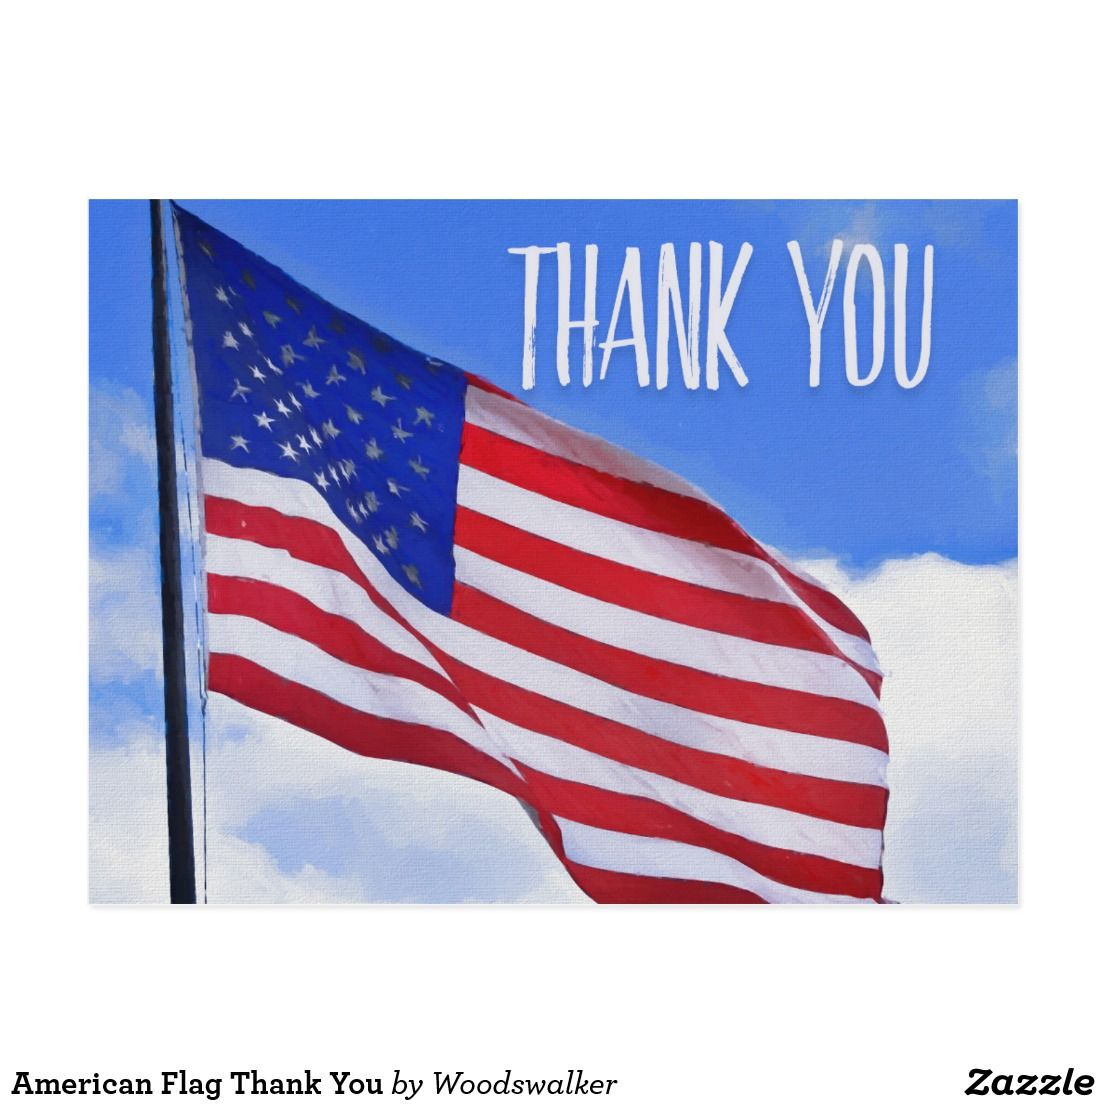 American Flag Thank You Postcard Zazzle Com In 2020 Thank You Postcards Postcard American Flag